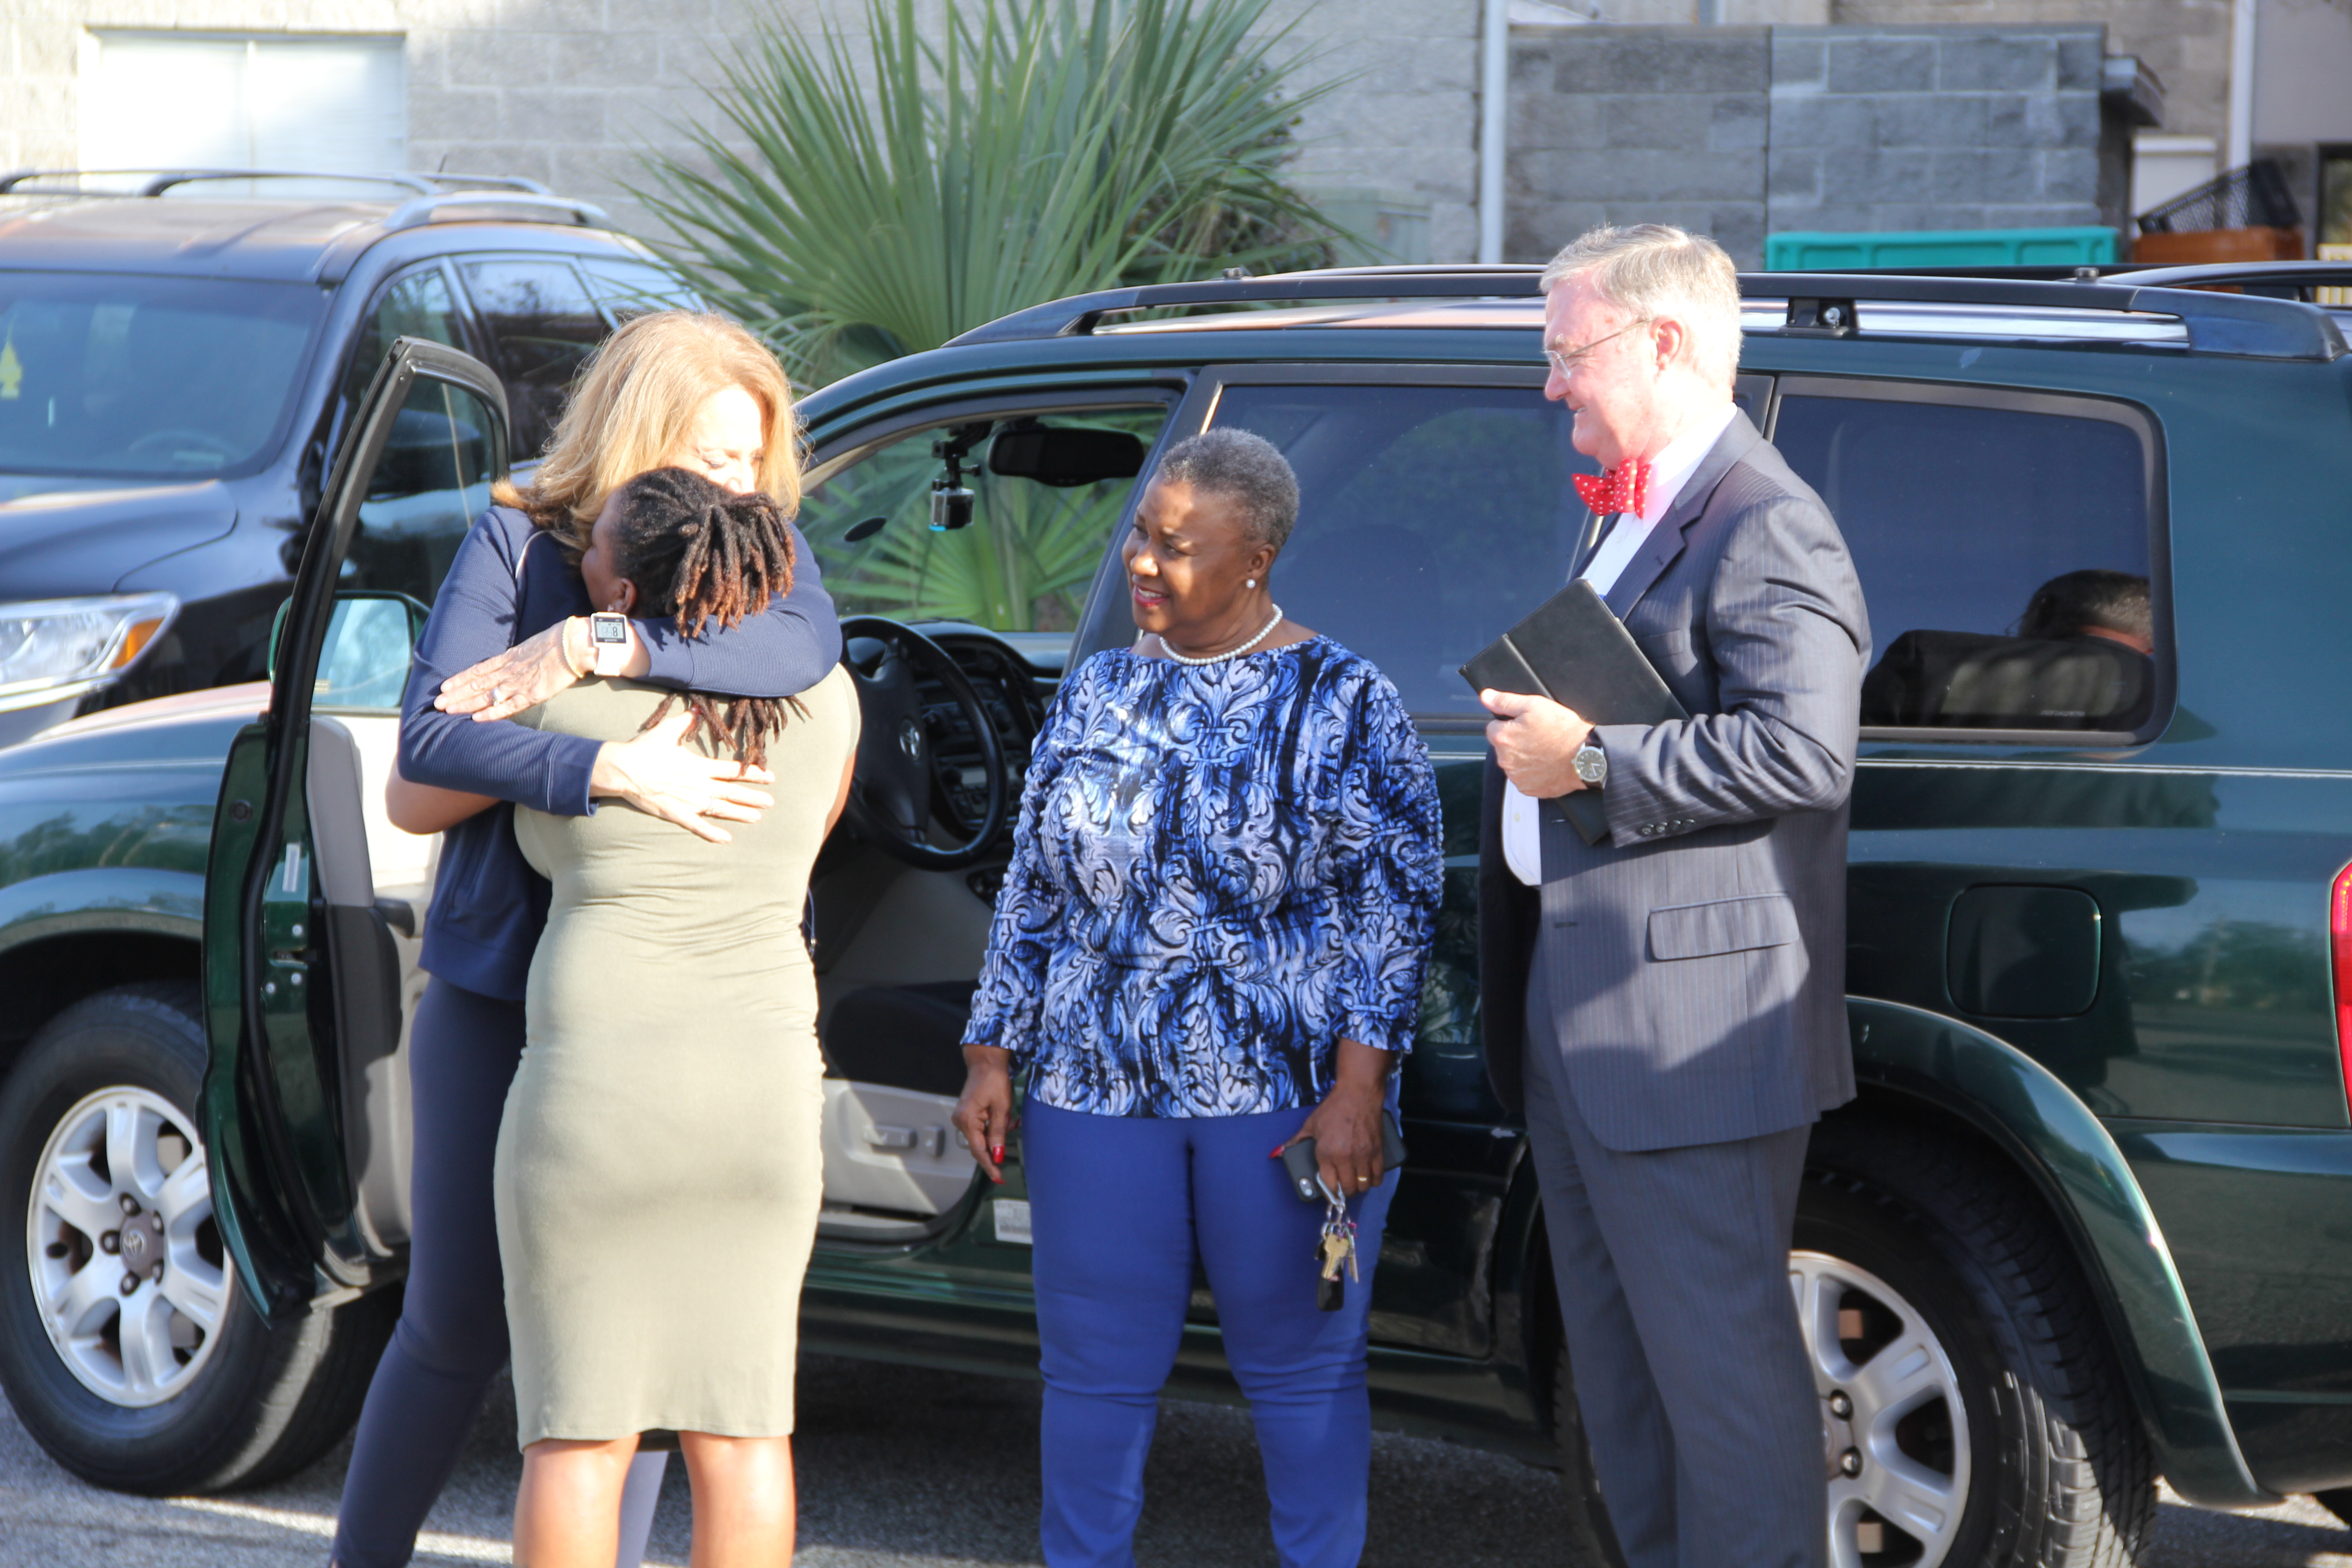 Single mom of 5 receives car donated through program that helps those in need